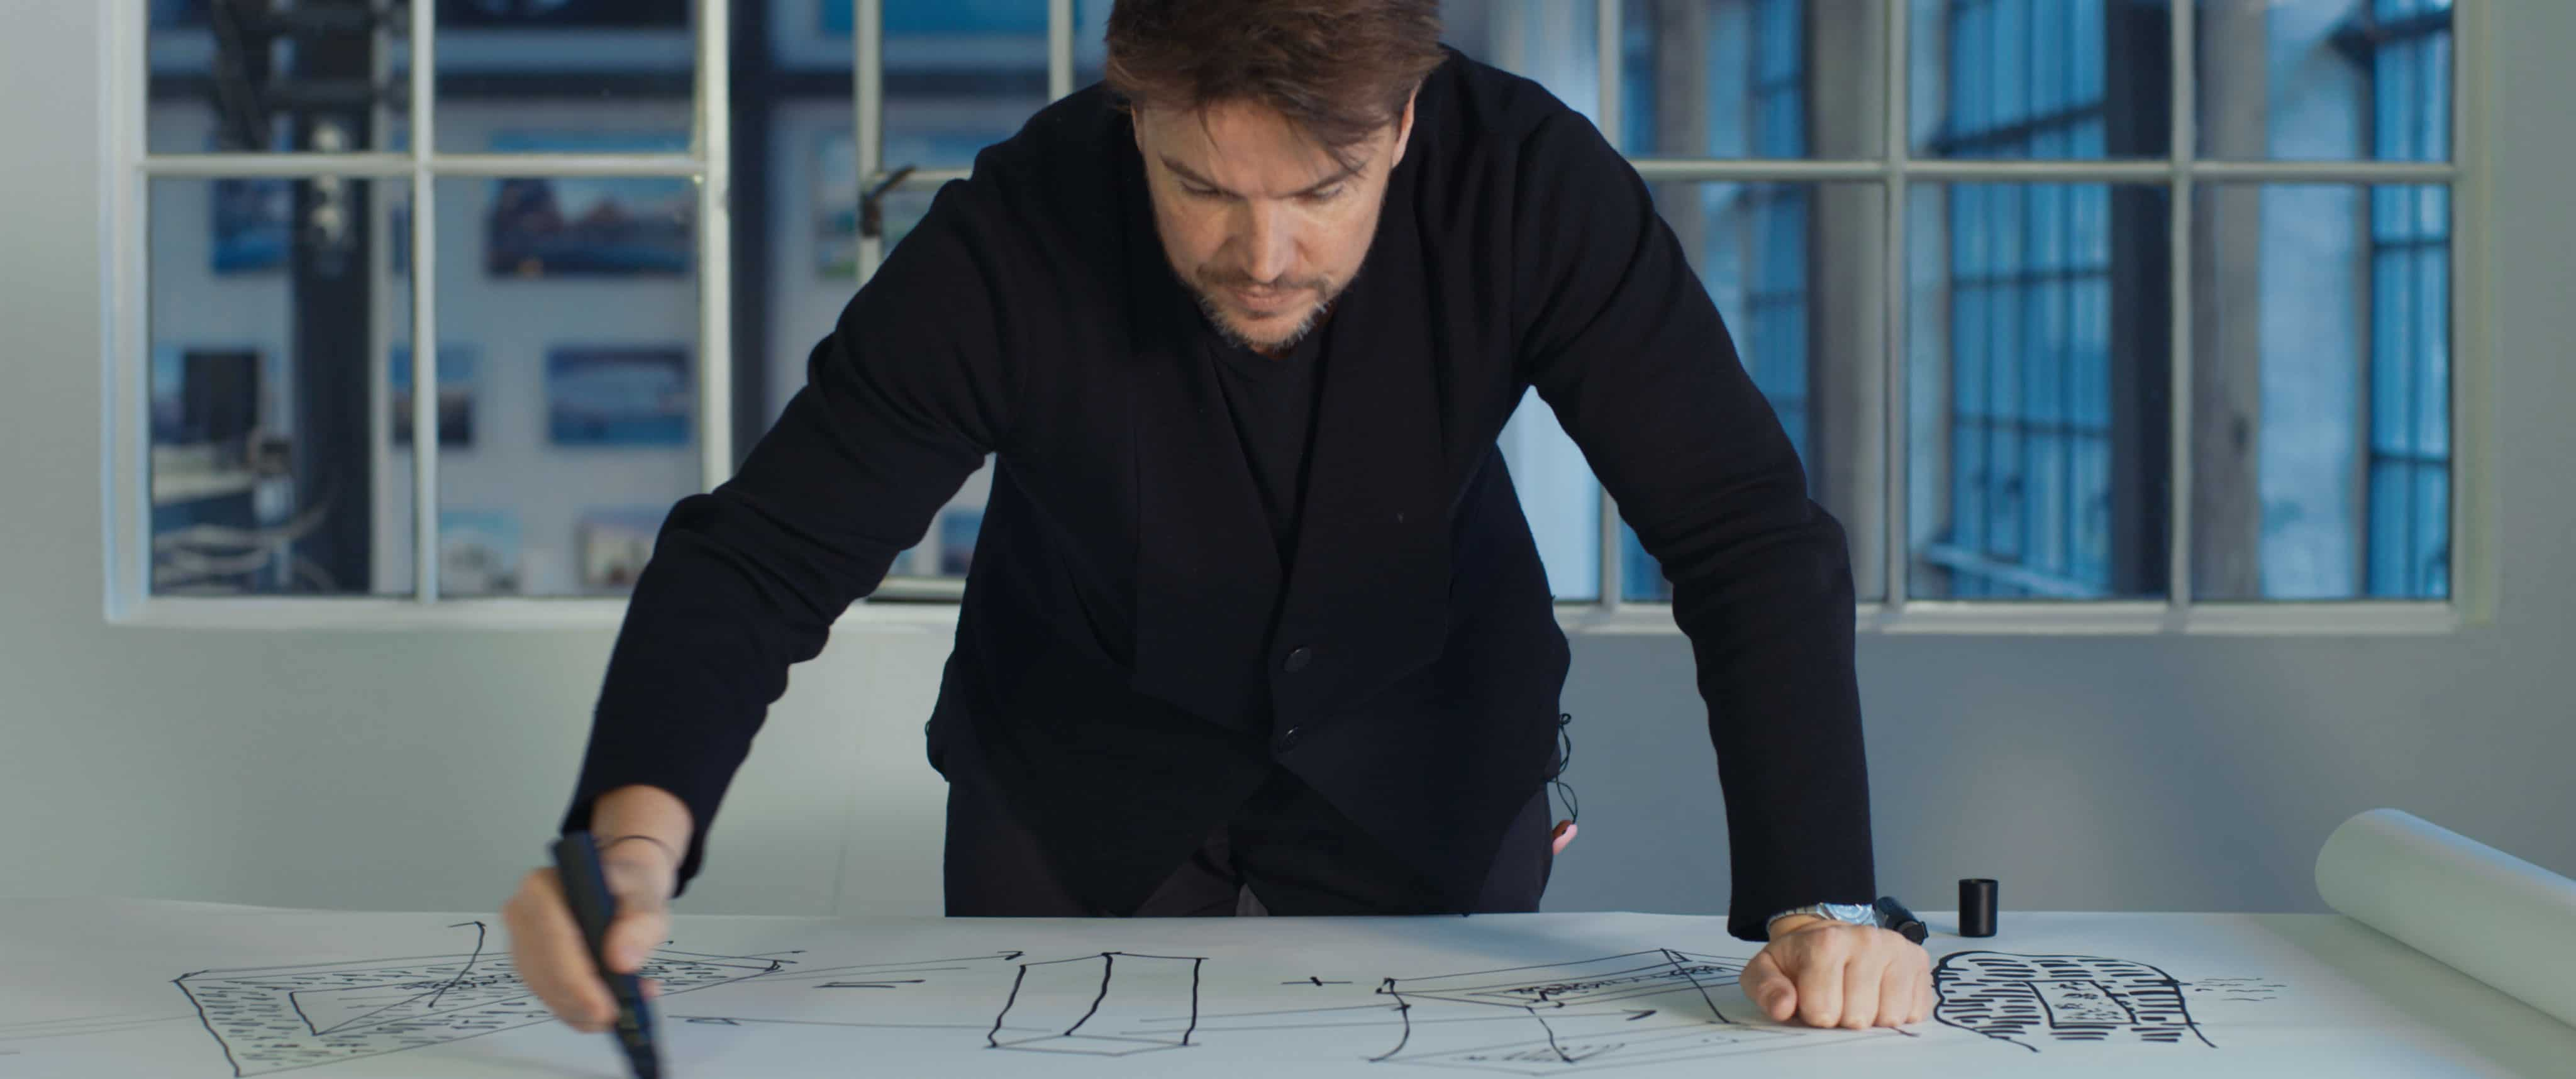 BIG Time film movie bjarke ingels architect 2